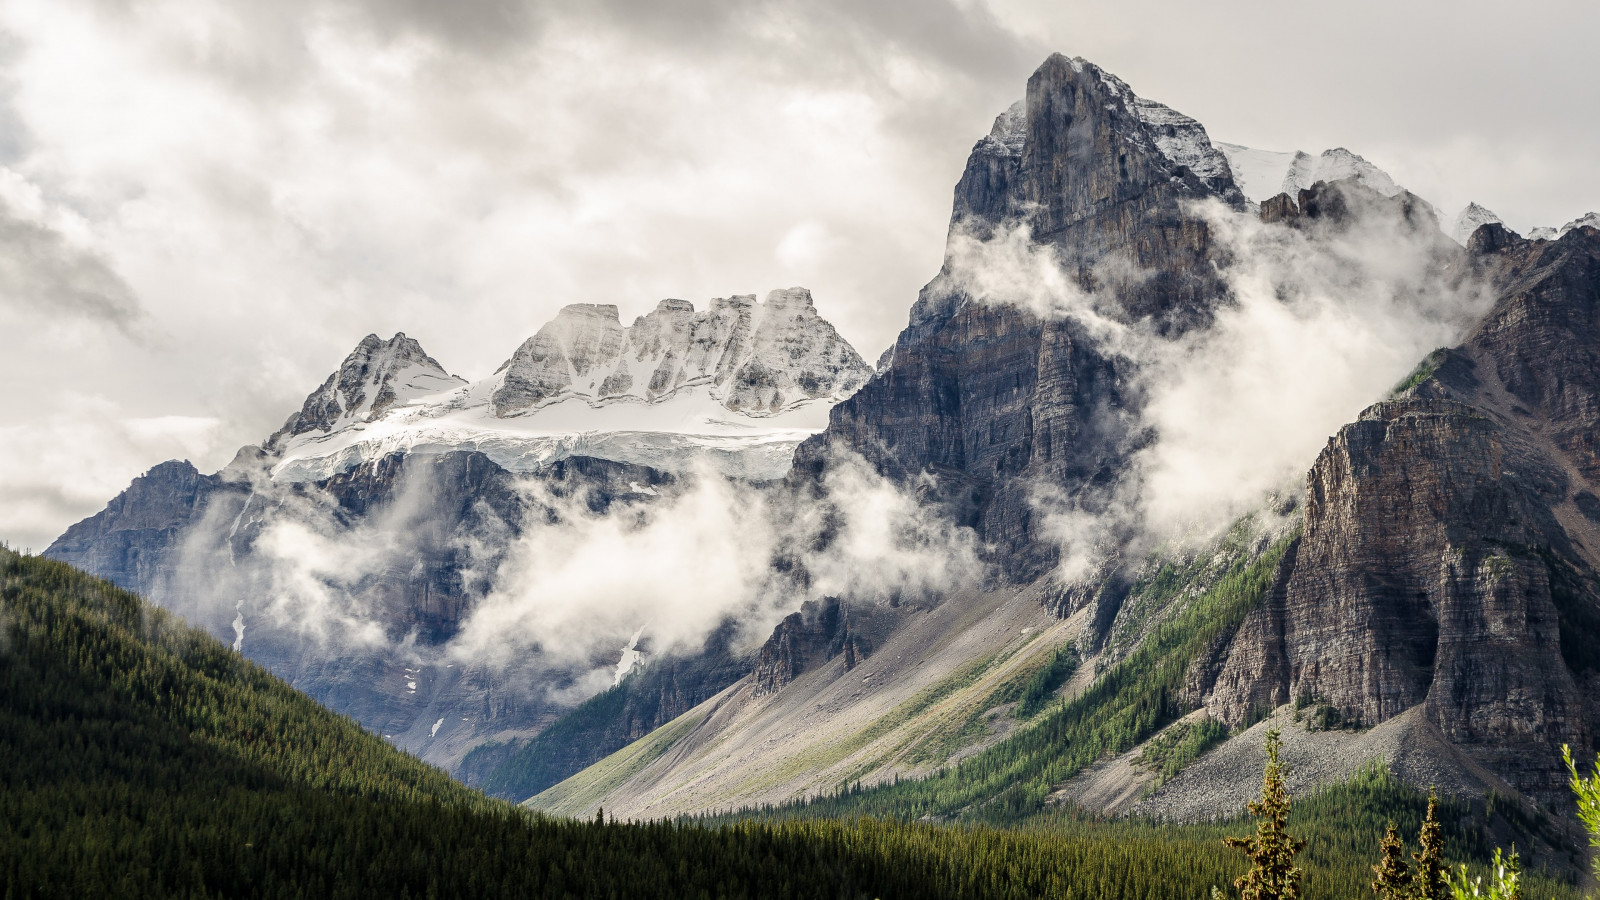 Alberta, Canada, natural landscape | 1600x900 wallpaper